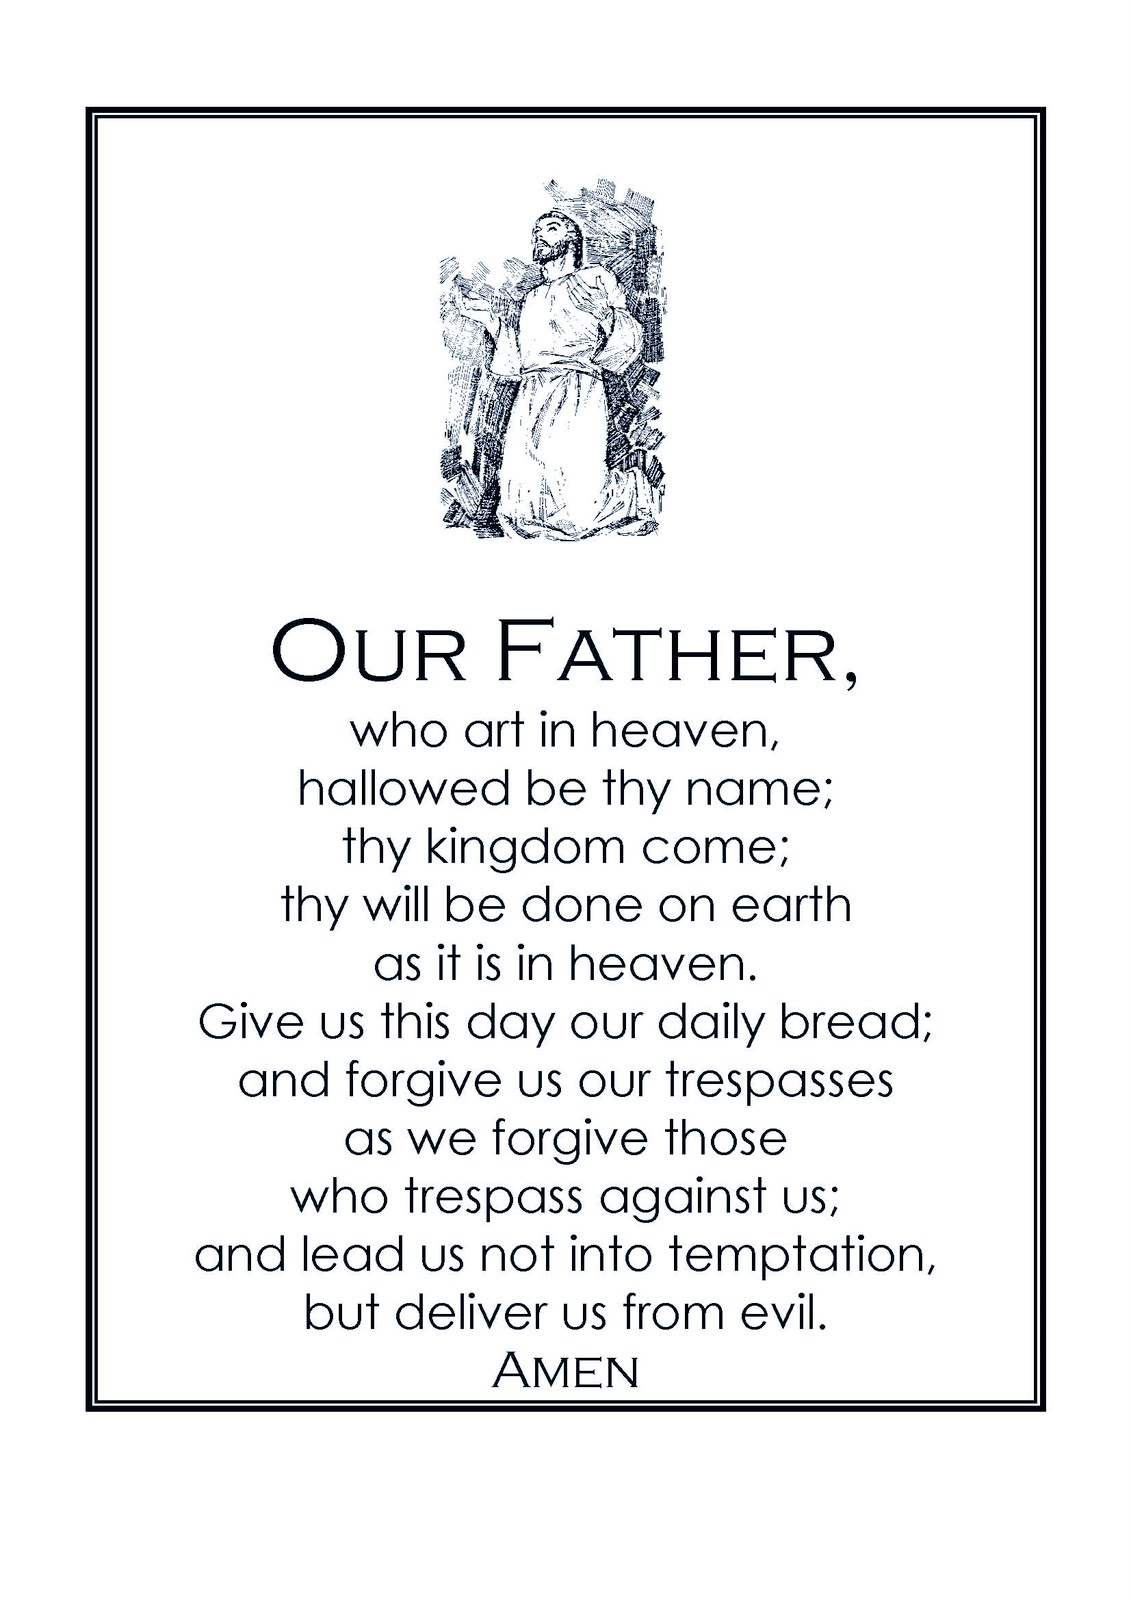 Dynamic image with printable our father prayer